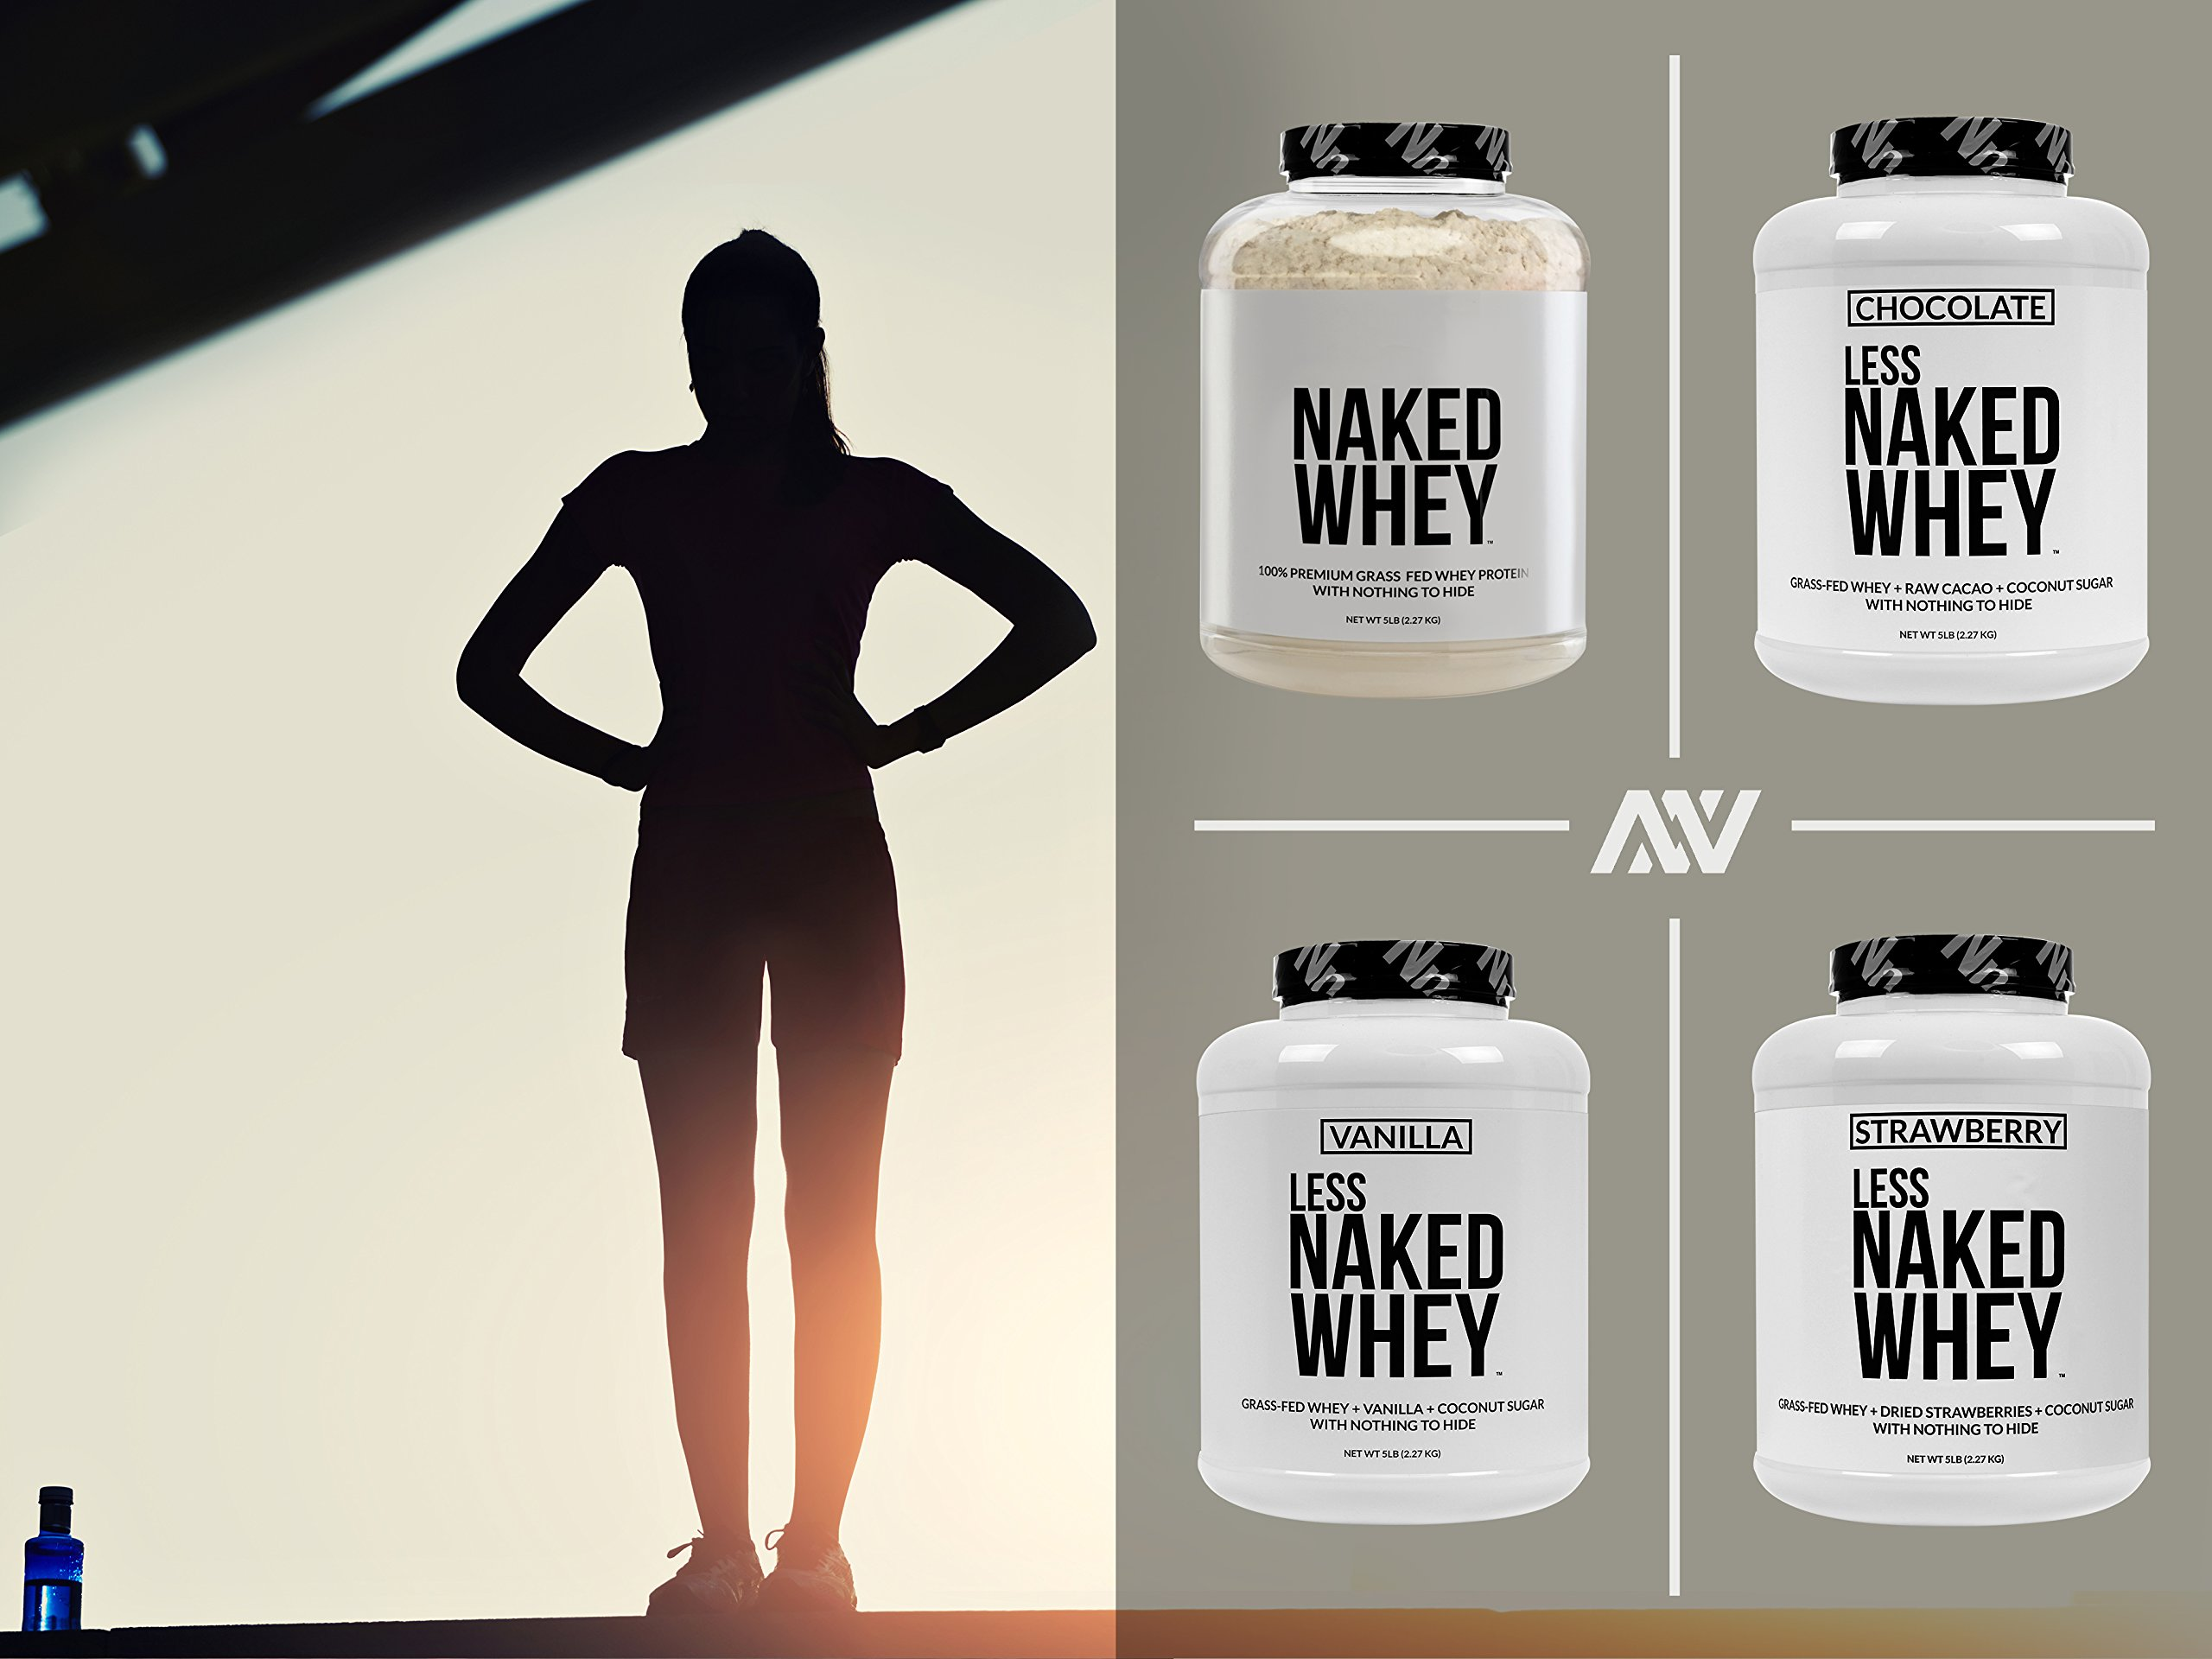 Naked WHEY 1LB 100% Grass Fed Unflavored Whey Protein Powder - US Farms, Only 1 Ingredient, Undenatured - No GMO, Soy or Gluten - No Preservatives - Promote Muscle Growth and Recovery - 15 Servings by NAKED nutrition (Image #9)